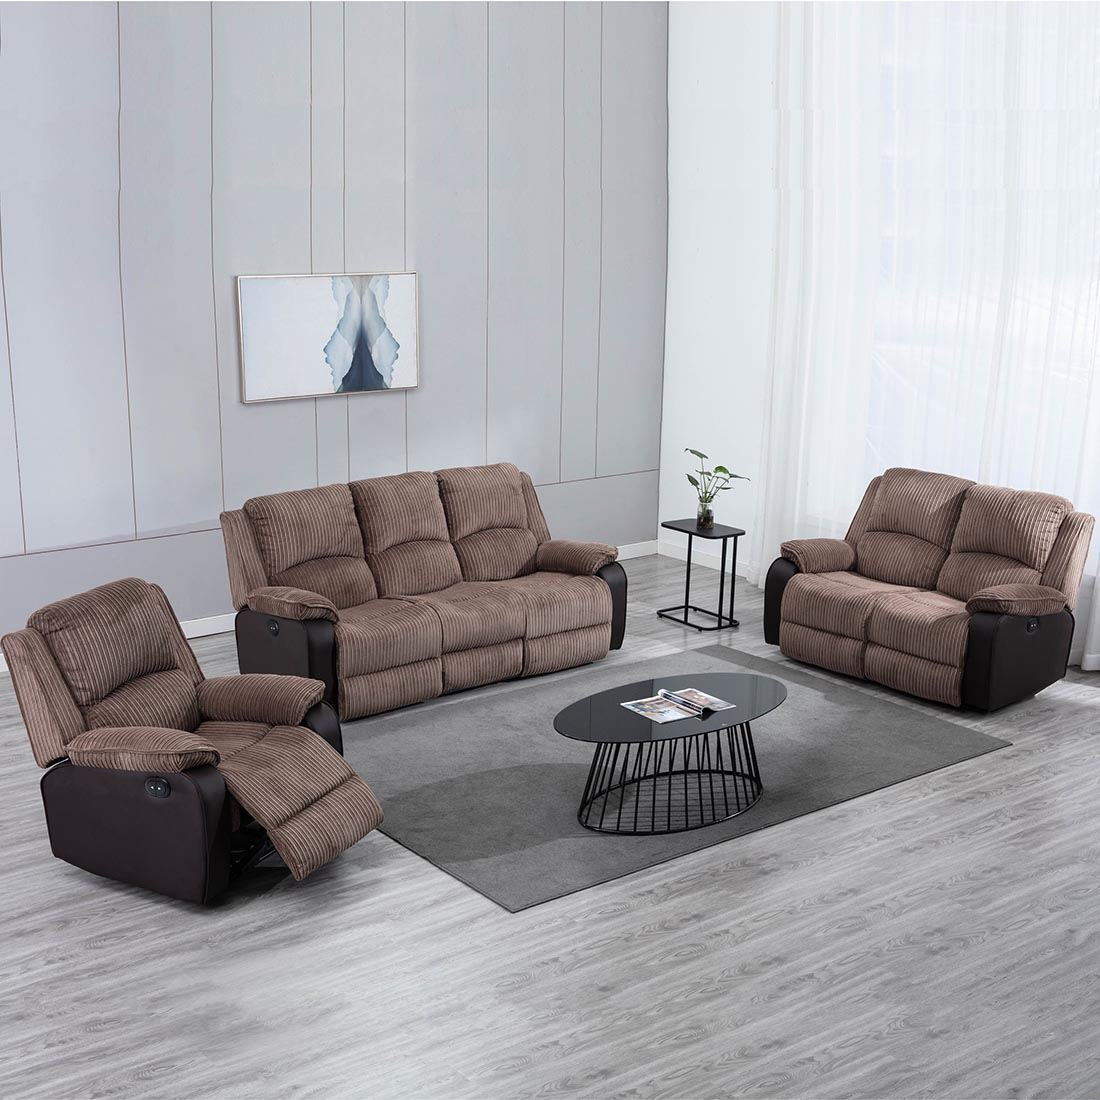 Postana High Back Electric Jumbo Cord Fabric Recliner 3 2 1 Sofa Armchair Set Ebay